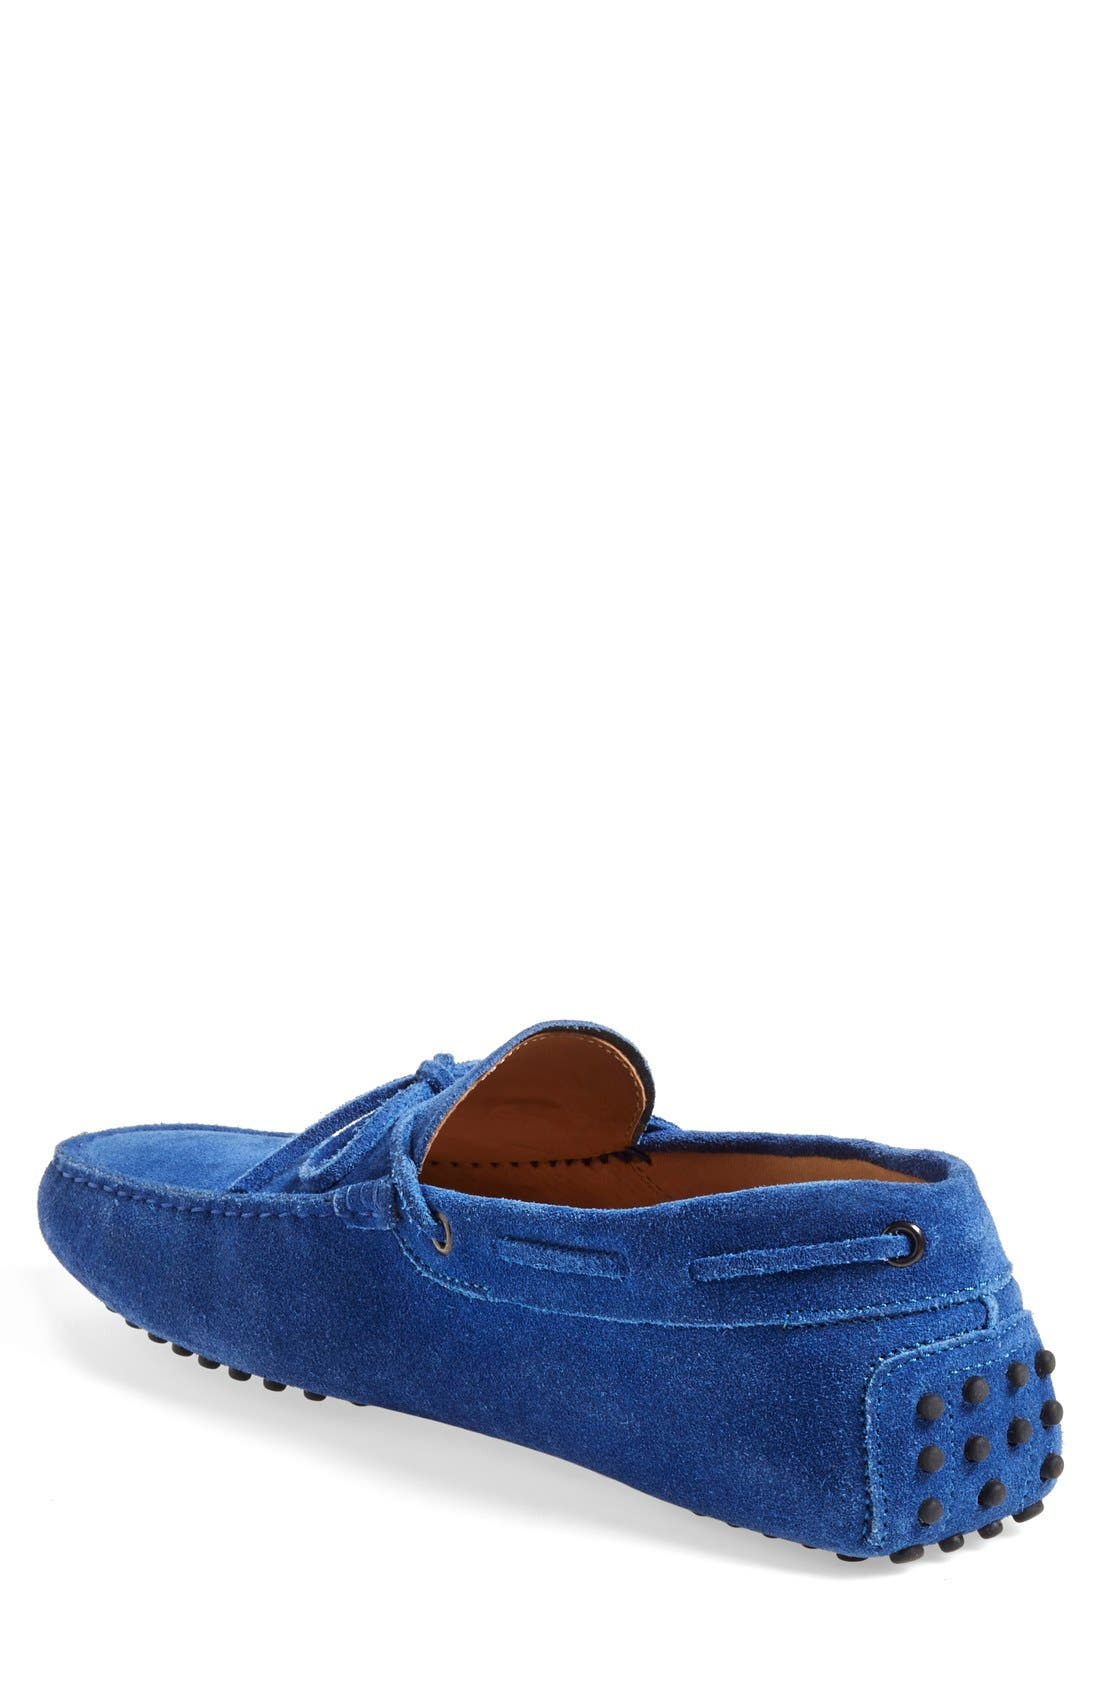 Gommini Tie Front Driving Moccasin,                             Alternate thumbnail 79, color,